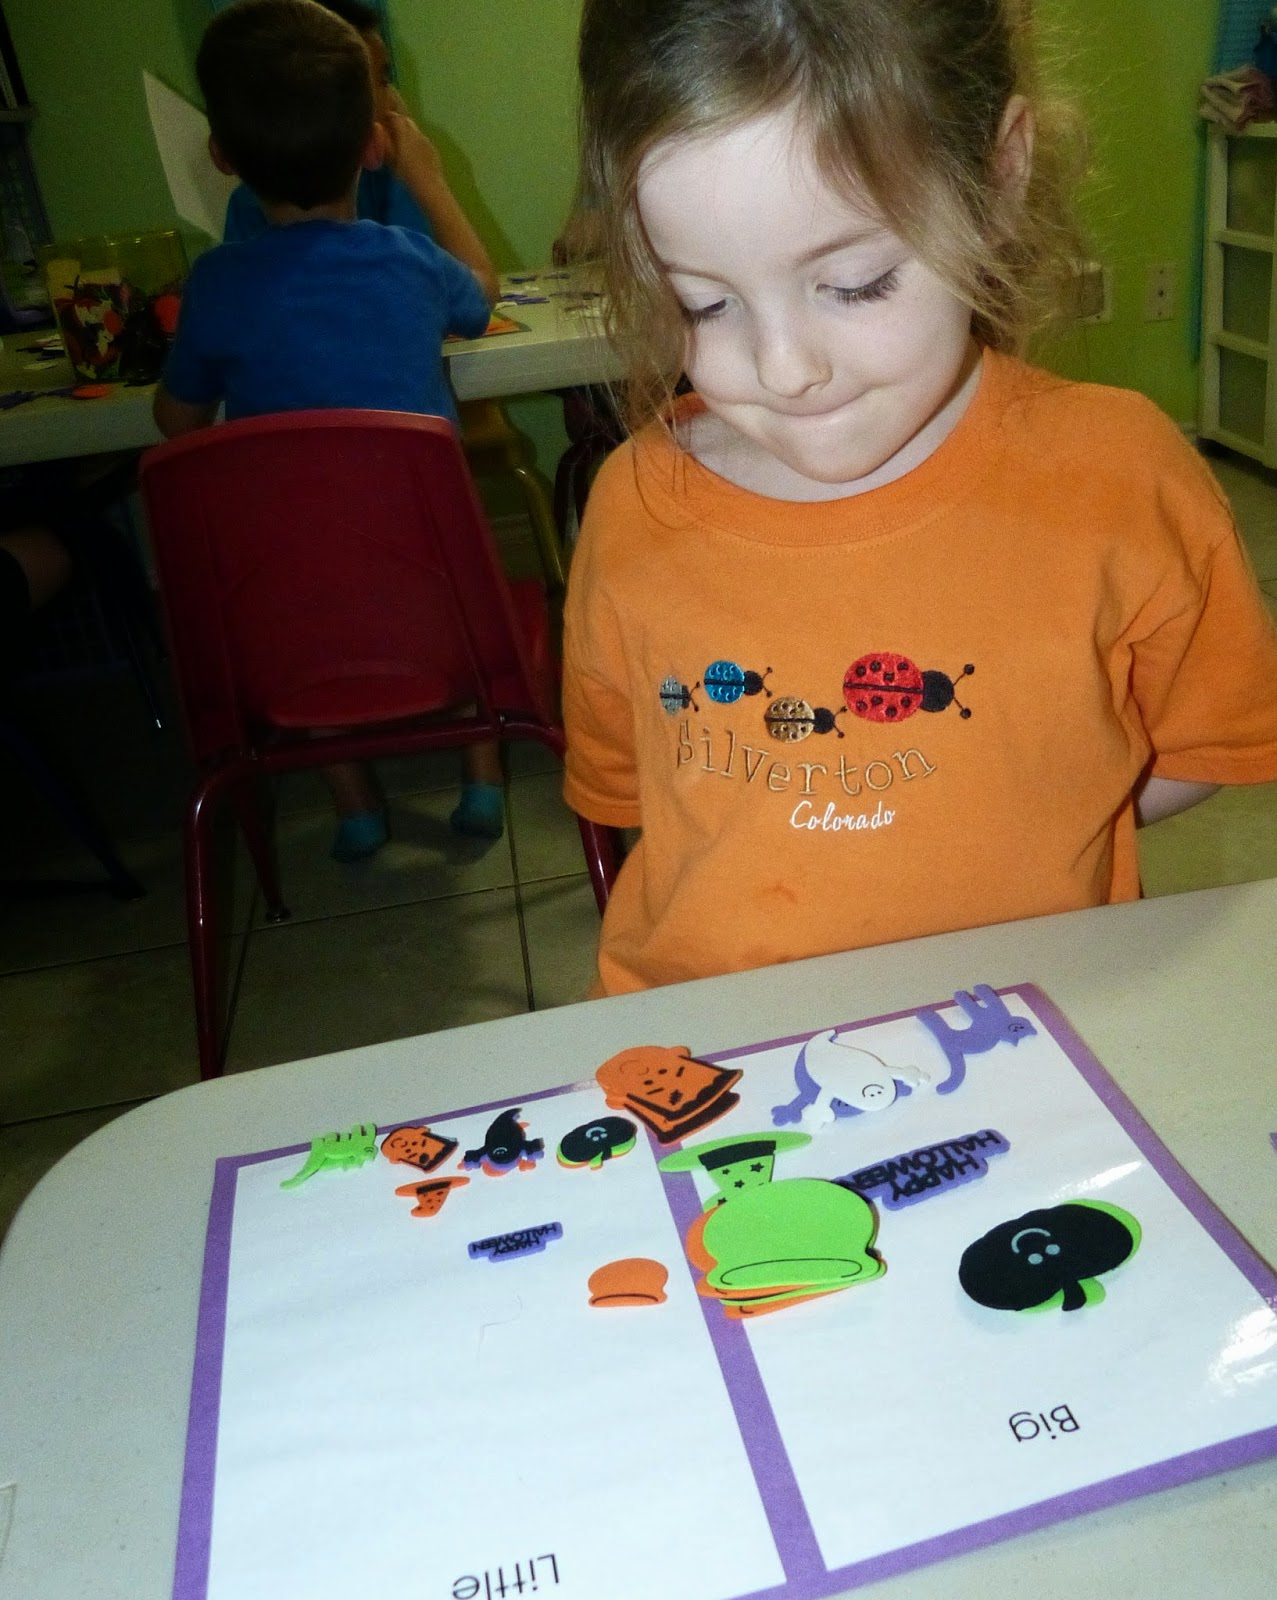 Awesome Halloween math and sensory learning ideas - see how this play based learning works!